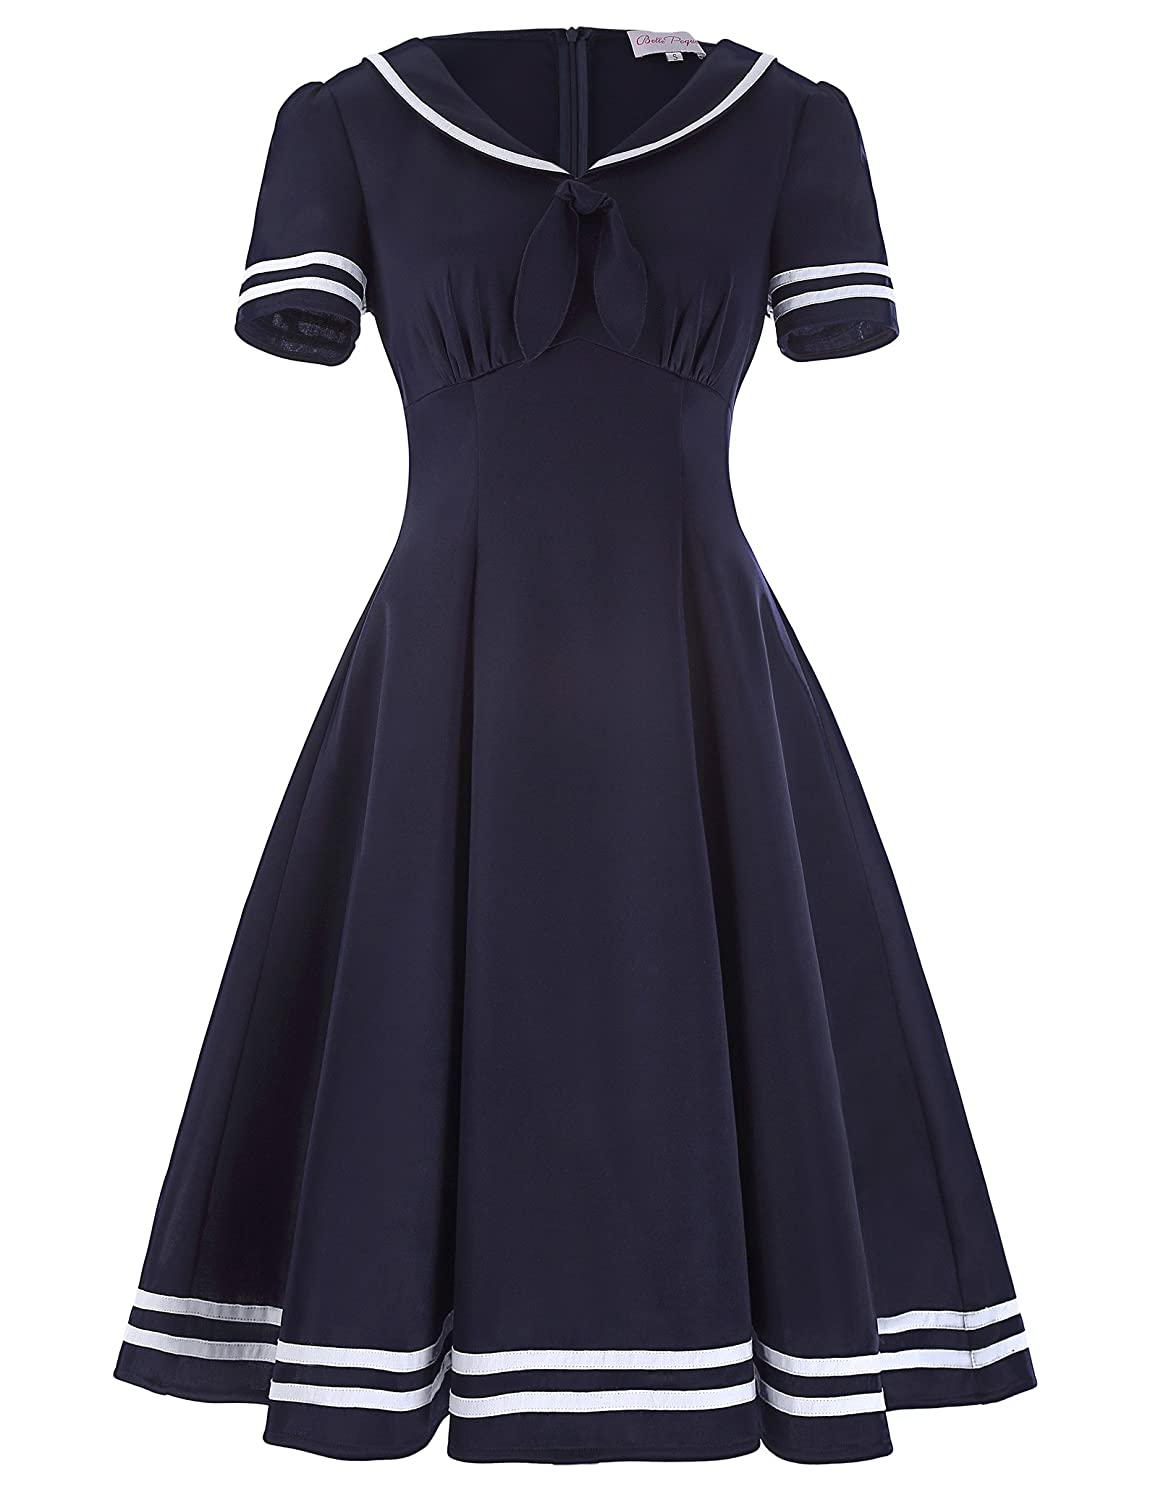 Rockabilly Dresses | Rockabilly Clothing | Viva Las Vegas Belle Poque Womens Retro Sailor Dress Short Sleeve Cocktail Party Swing Dress $29.99 AT vintagedancer.com